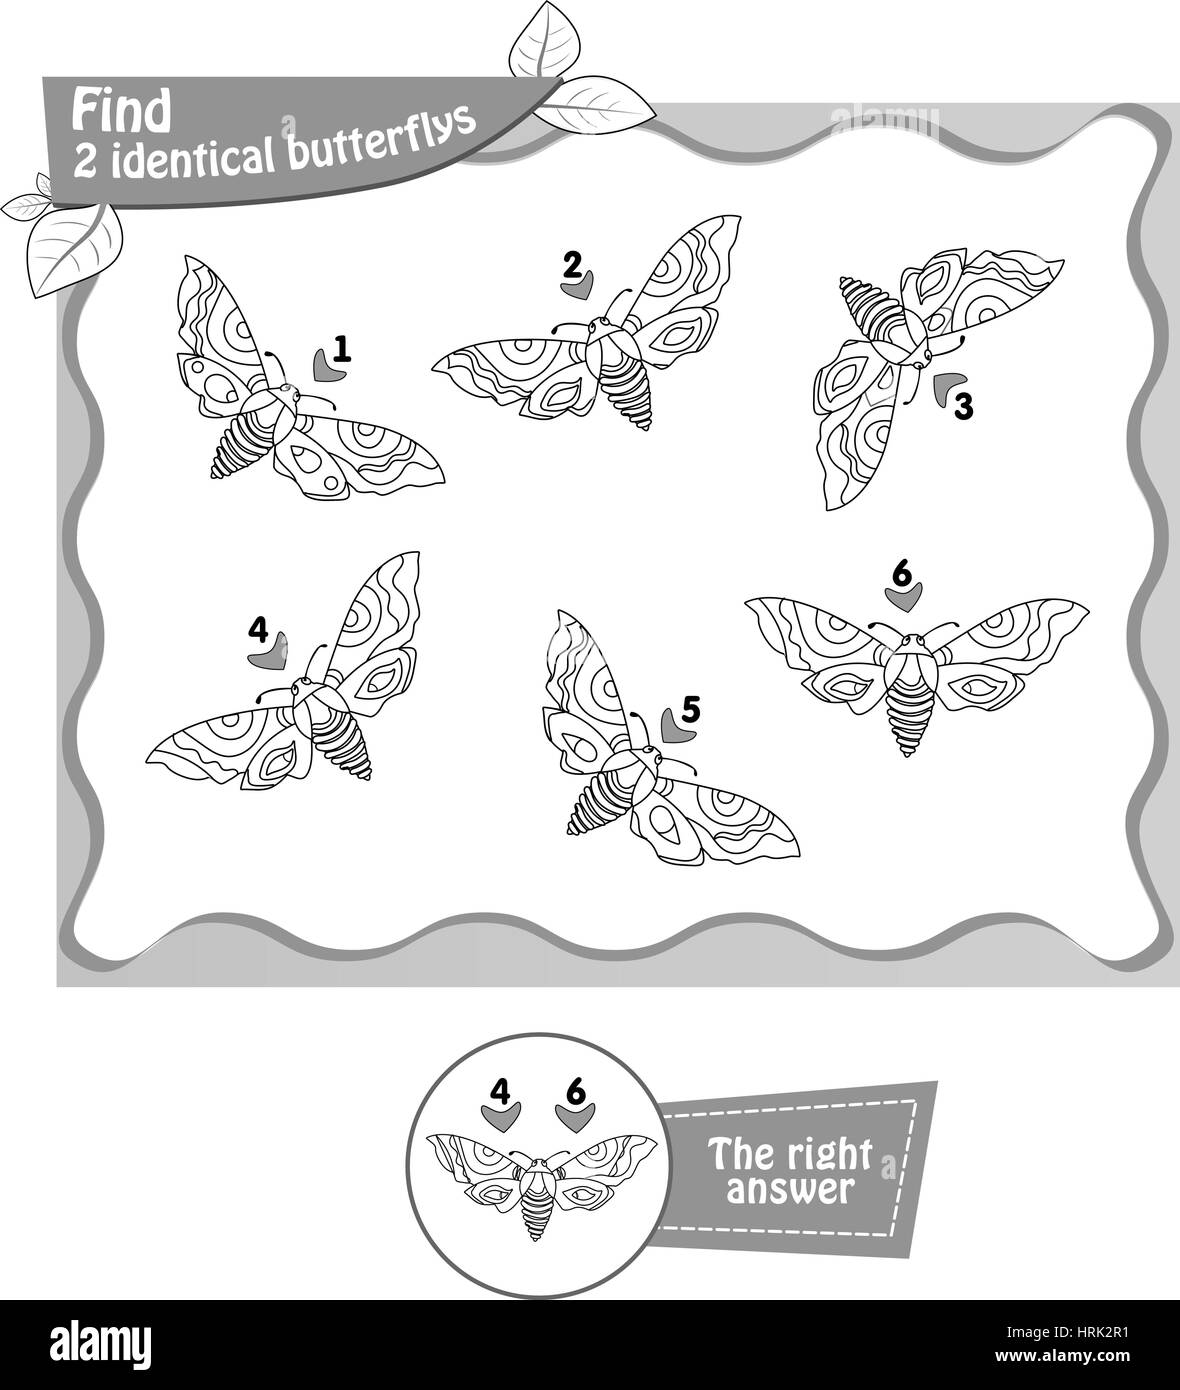 Visual Game Coloring Book For Children And Adults Task To Find 2 Identical Butterflys Black White Vector Illustration